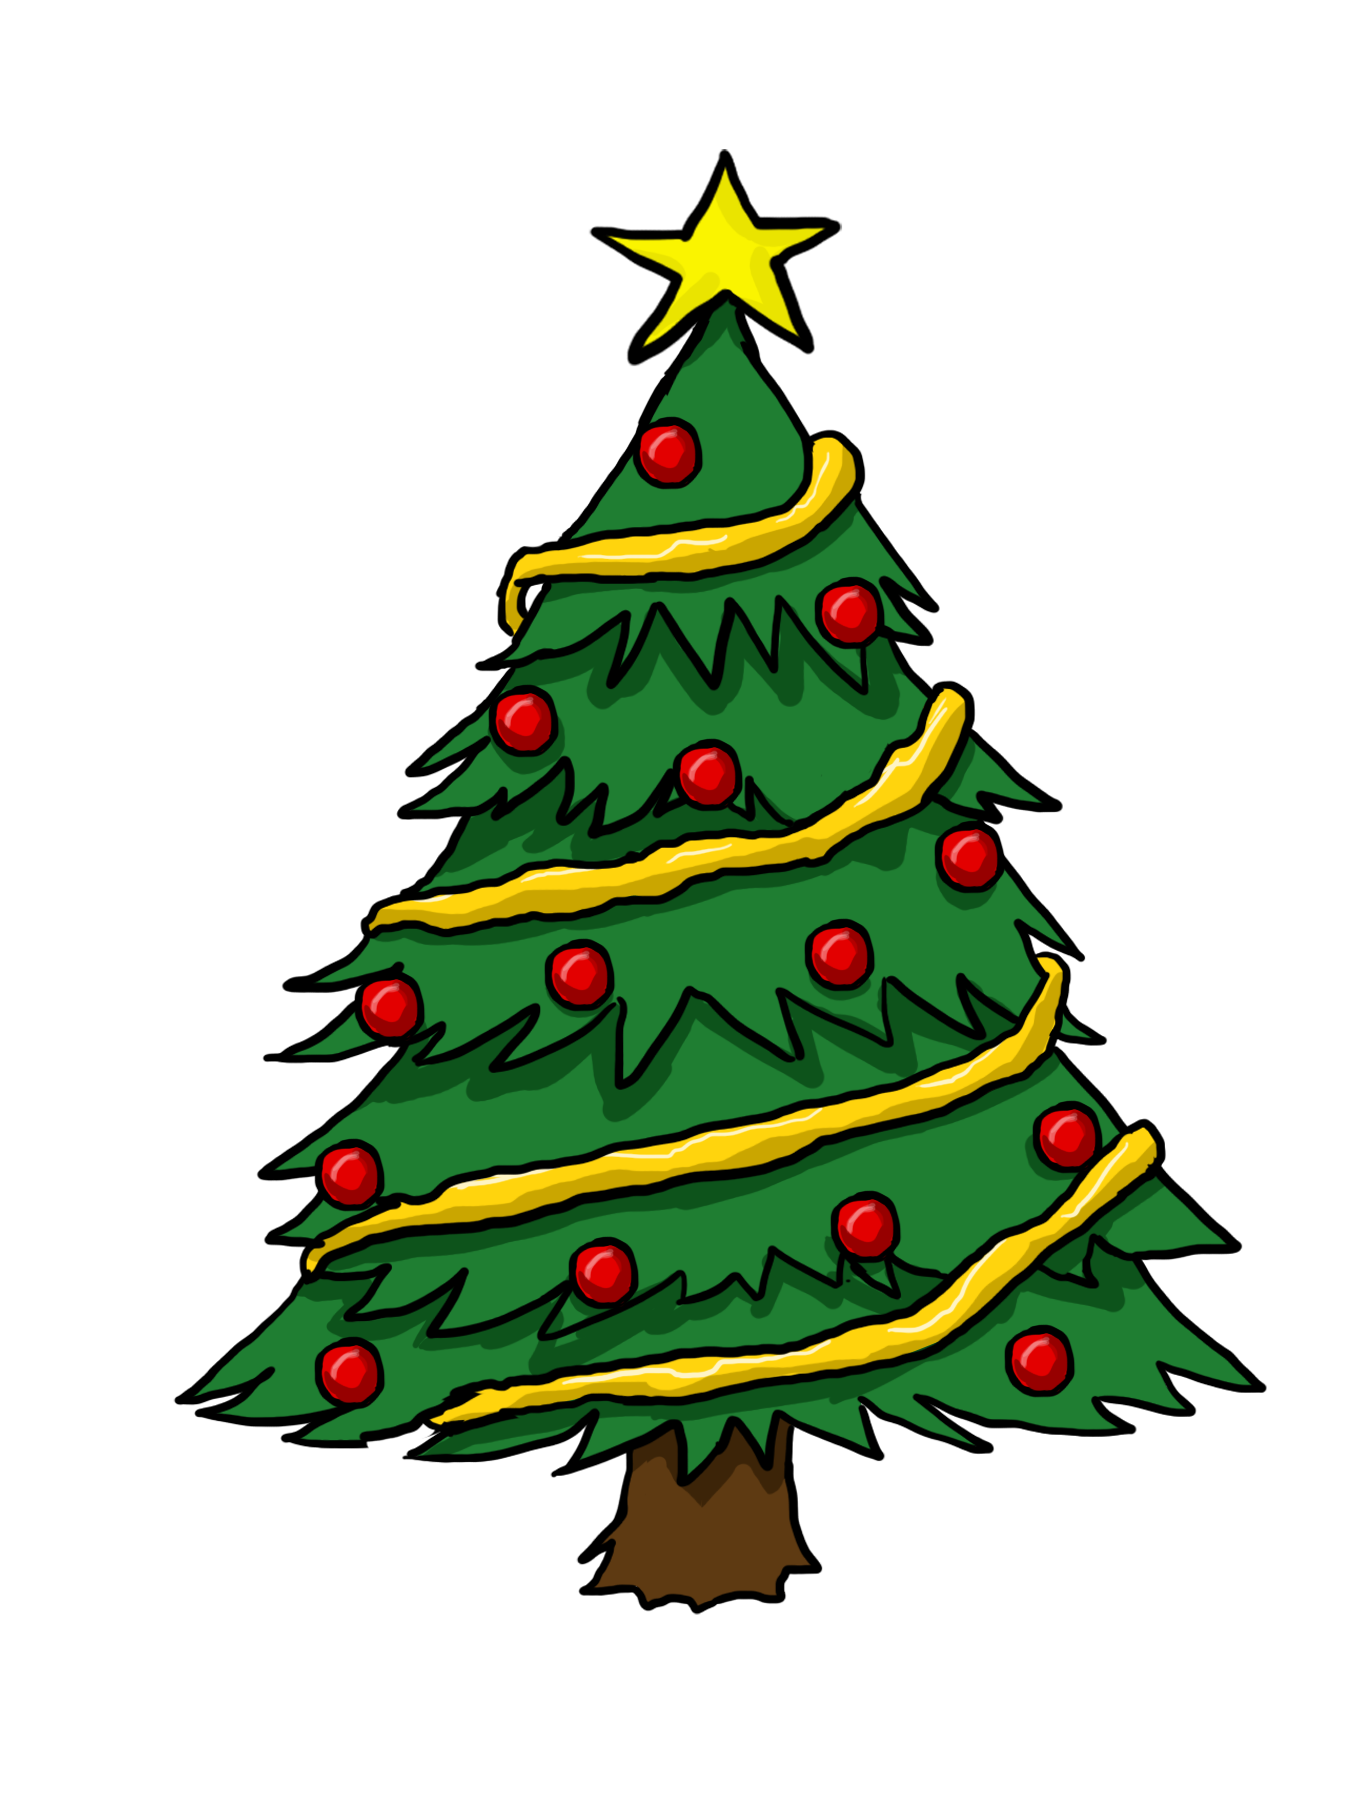 Grinch clipart christmas tree. Free download clip art